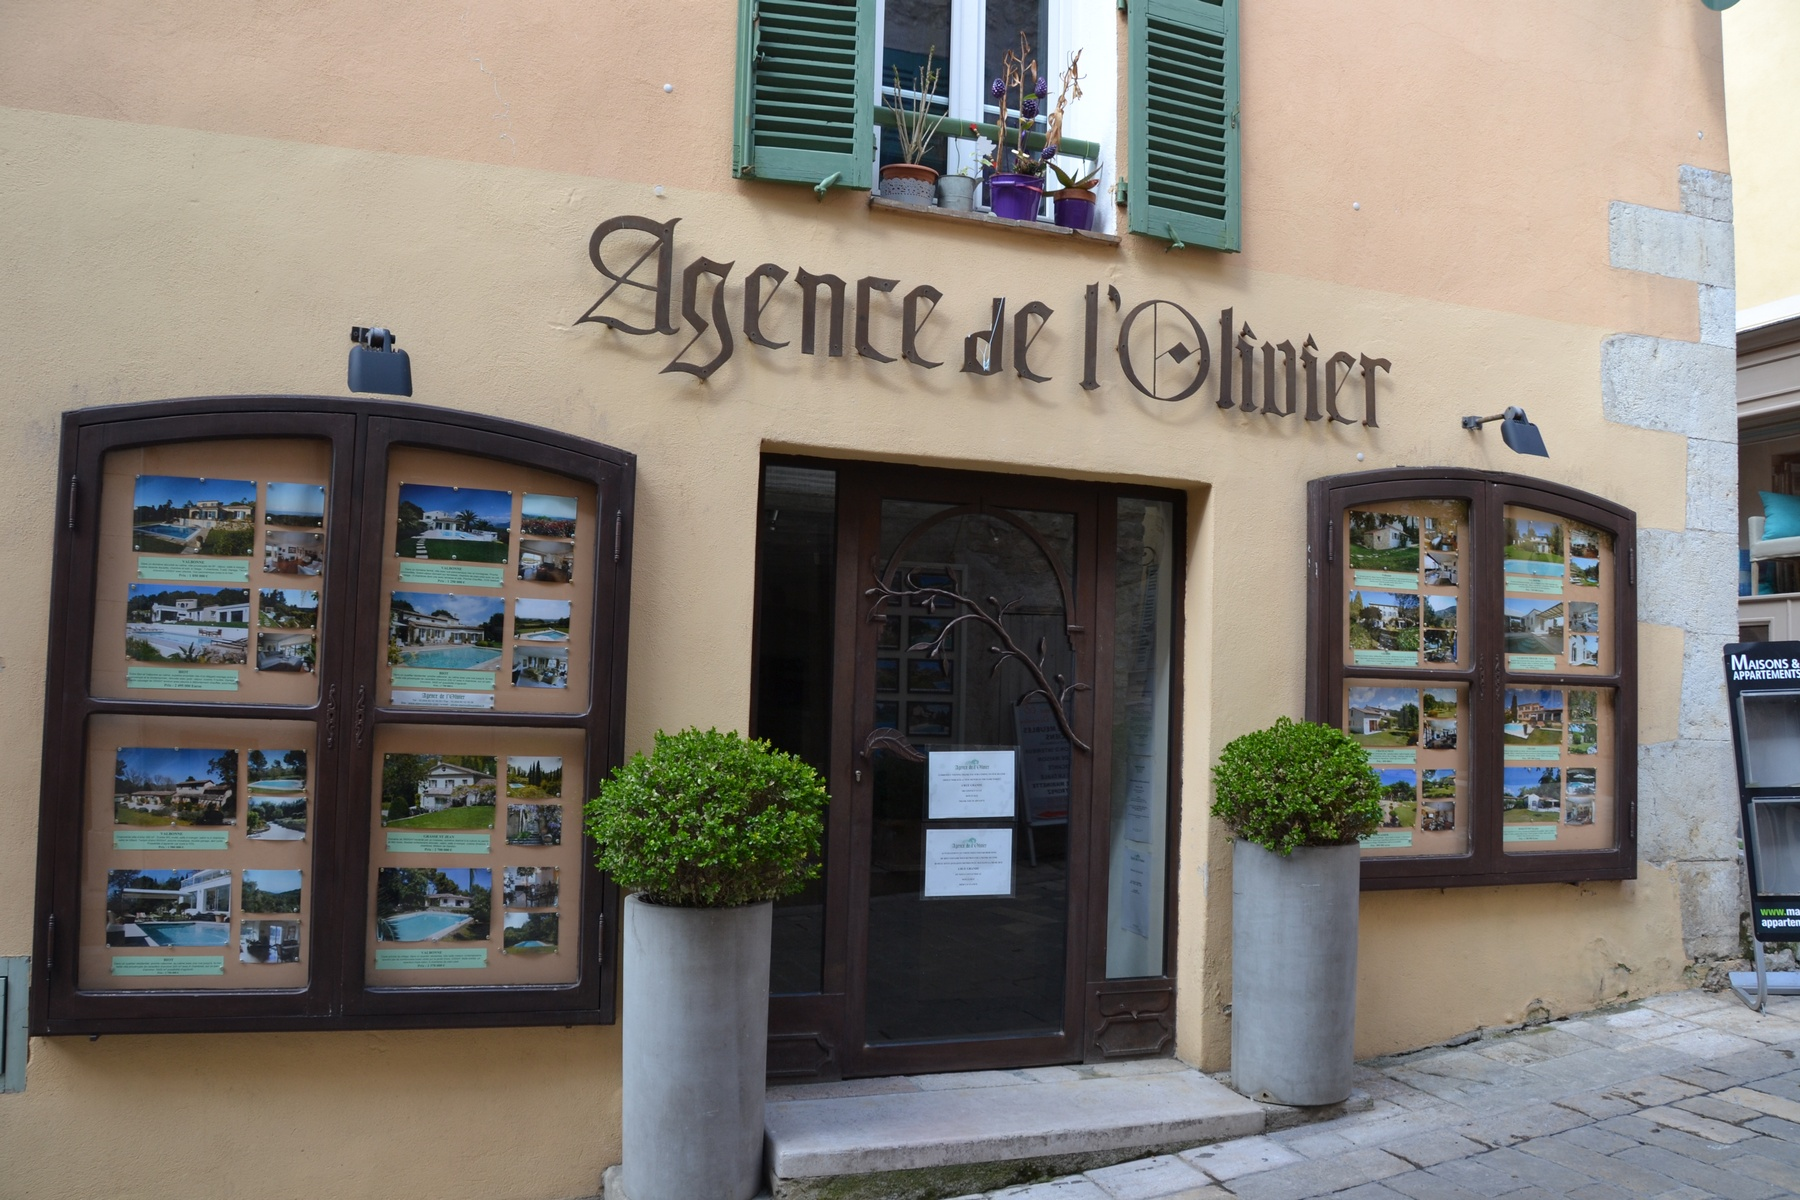 Real estate agency Valbonne South of France - Agence de l'Olivier